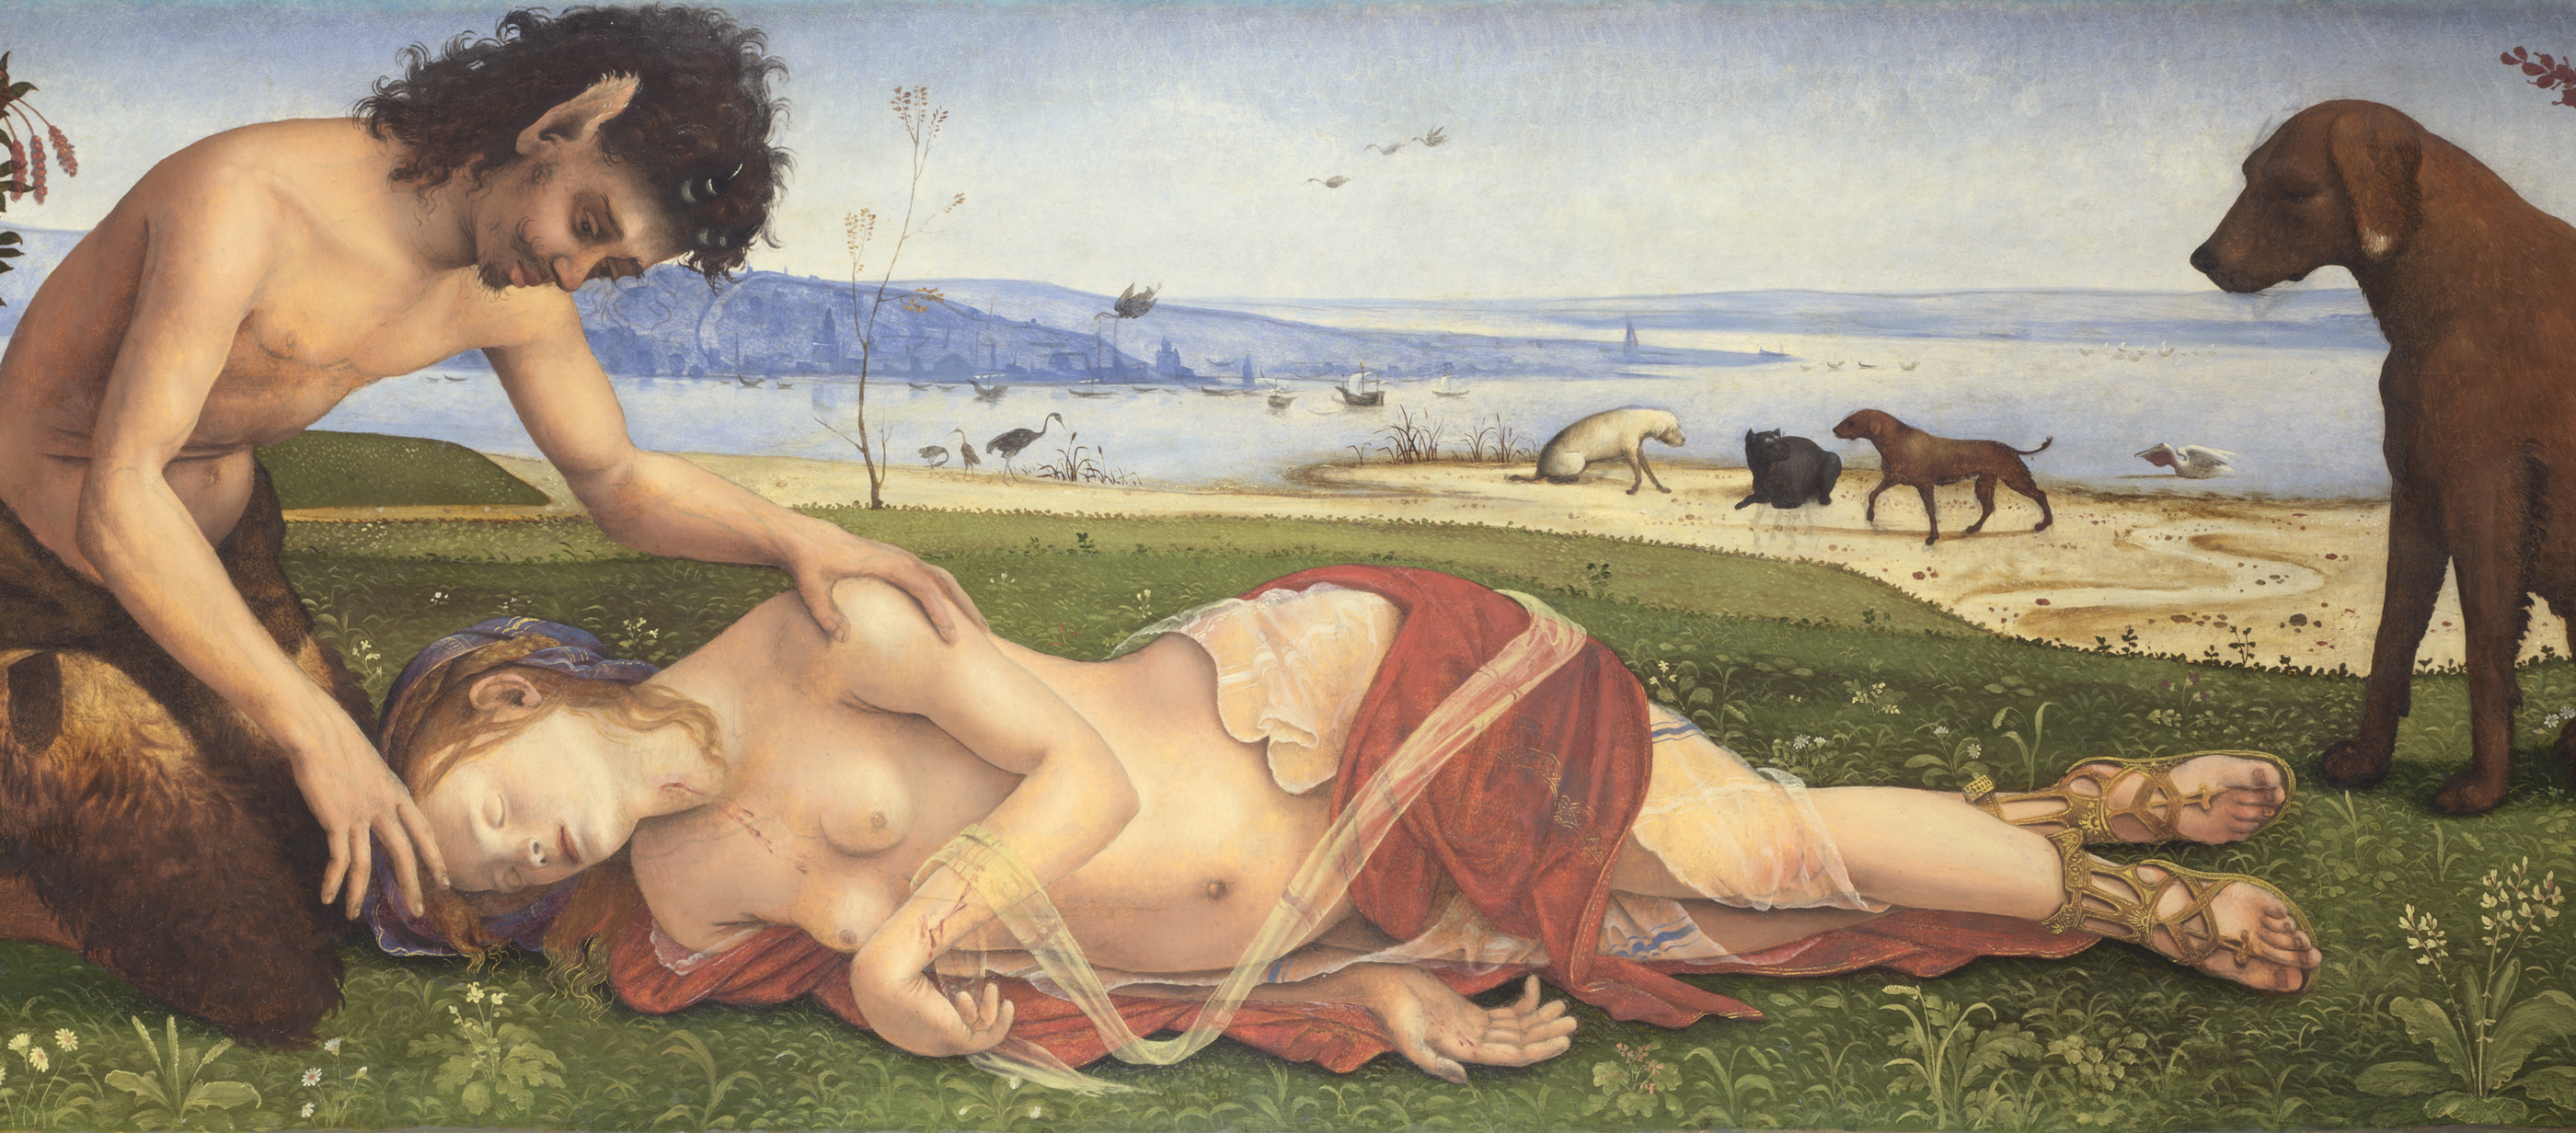 Satyr Mourning over a Nymph, by Piero di Cosimo, c. 1495.